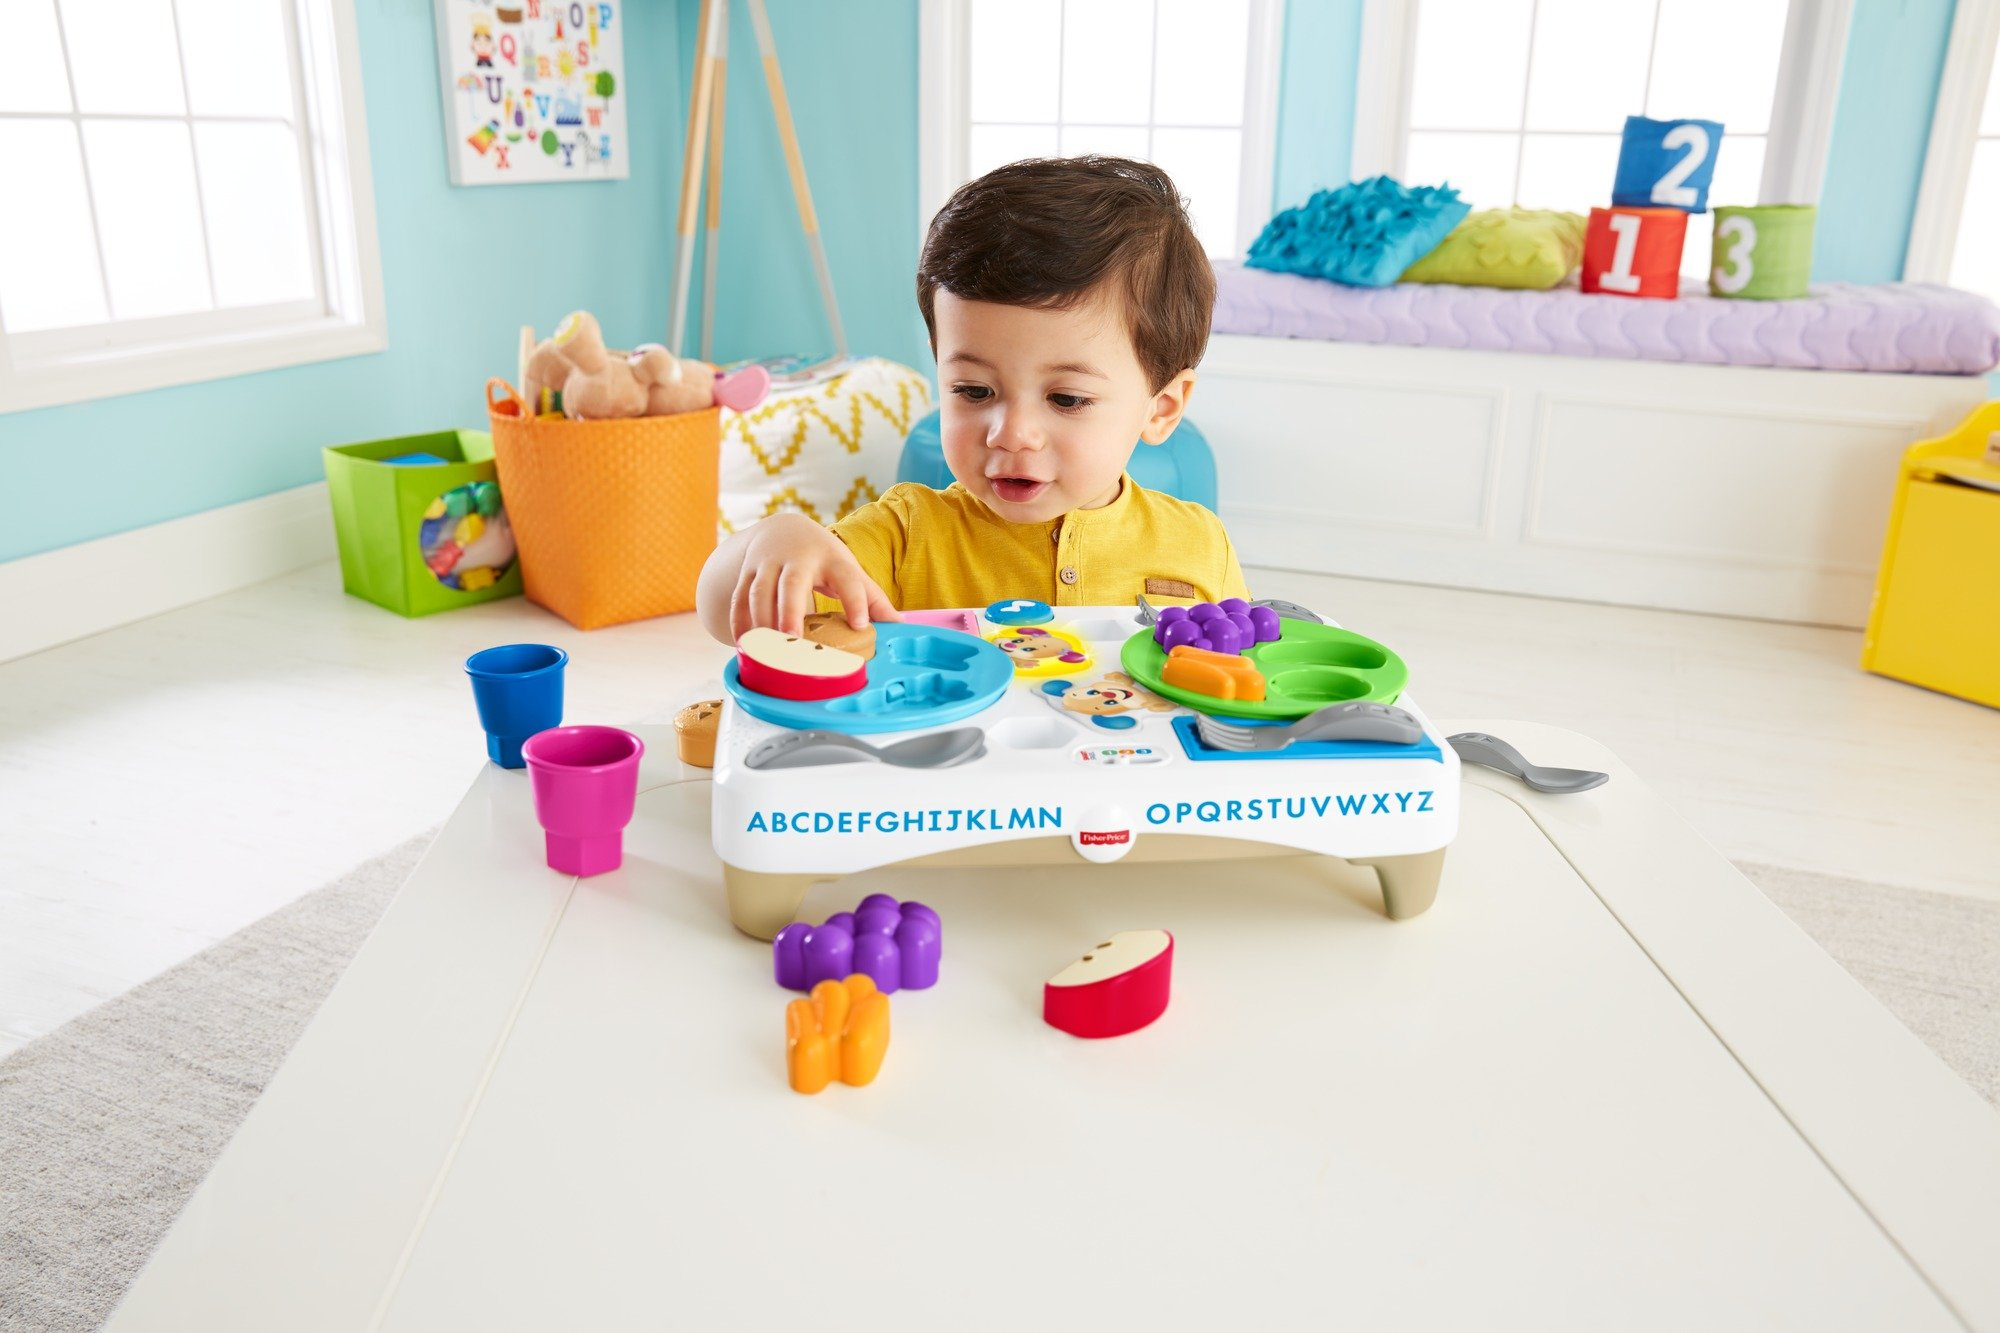 Fisher-Price FBM90 Say Please Snack Set, Laugh and Learn Toddler Kitchen and Food Role Play Toy, Suitable for 18 Months Plus by Fisher-Price (Image #5)